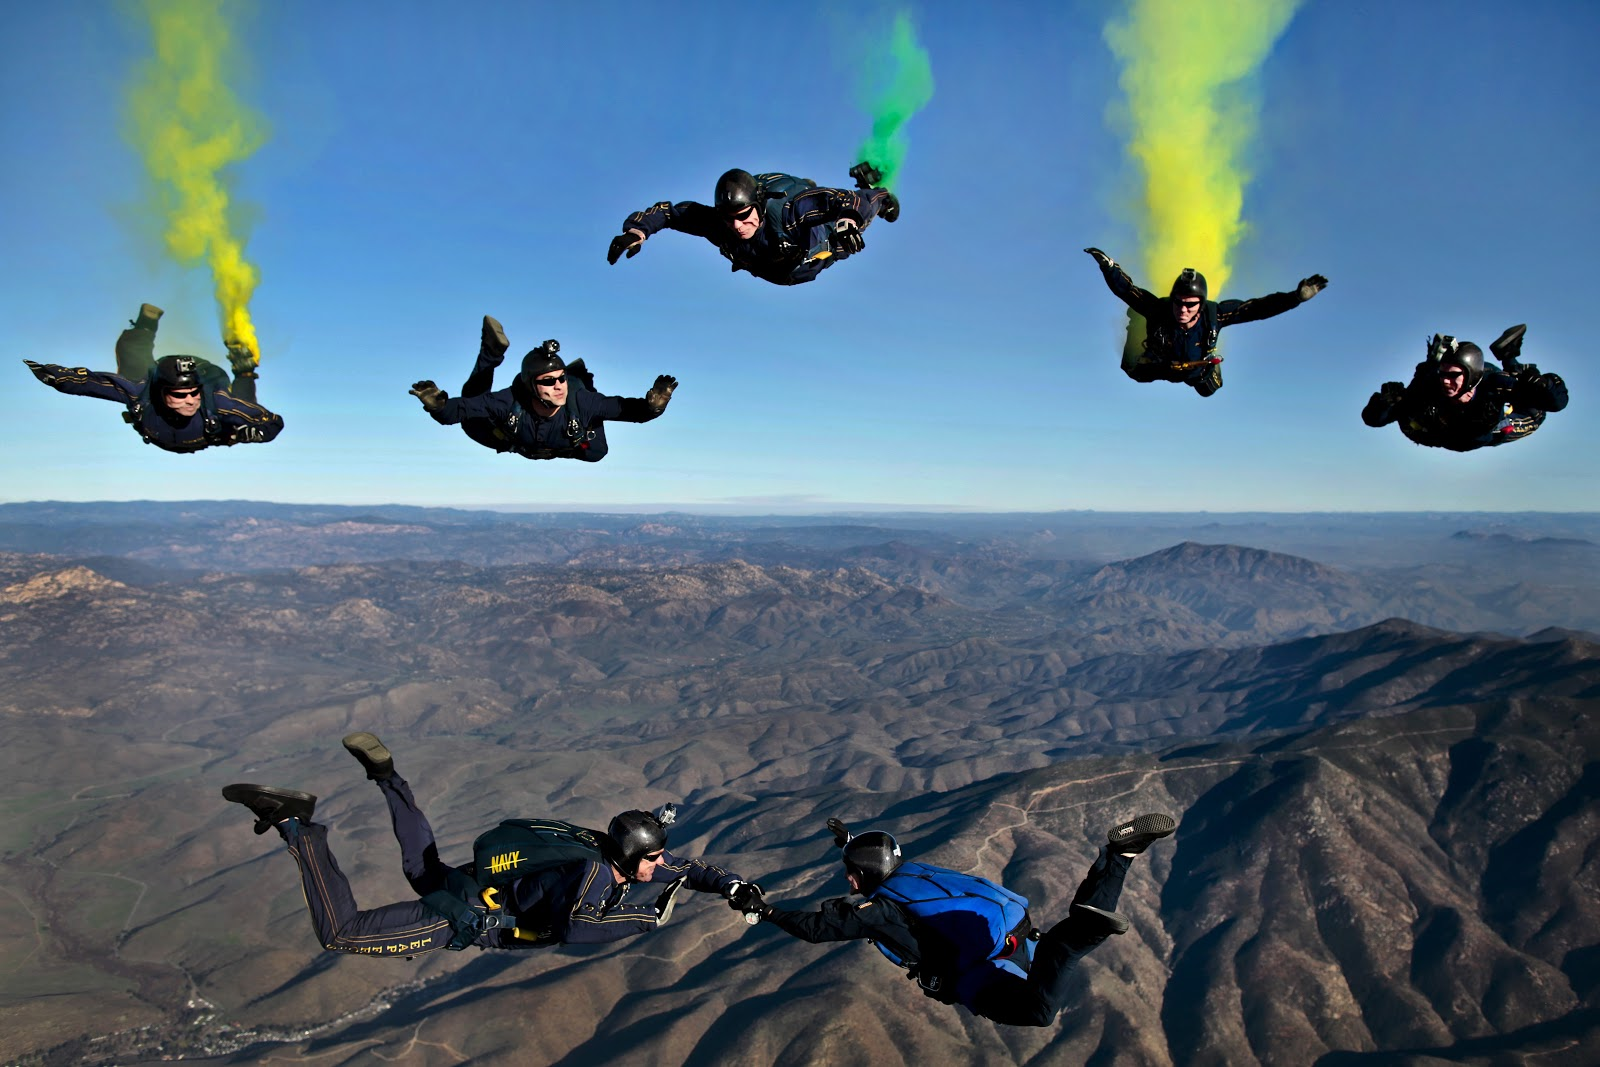 california-parachutists-skydivers-flares-70361.jpeg